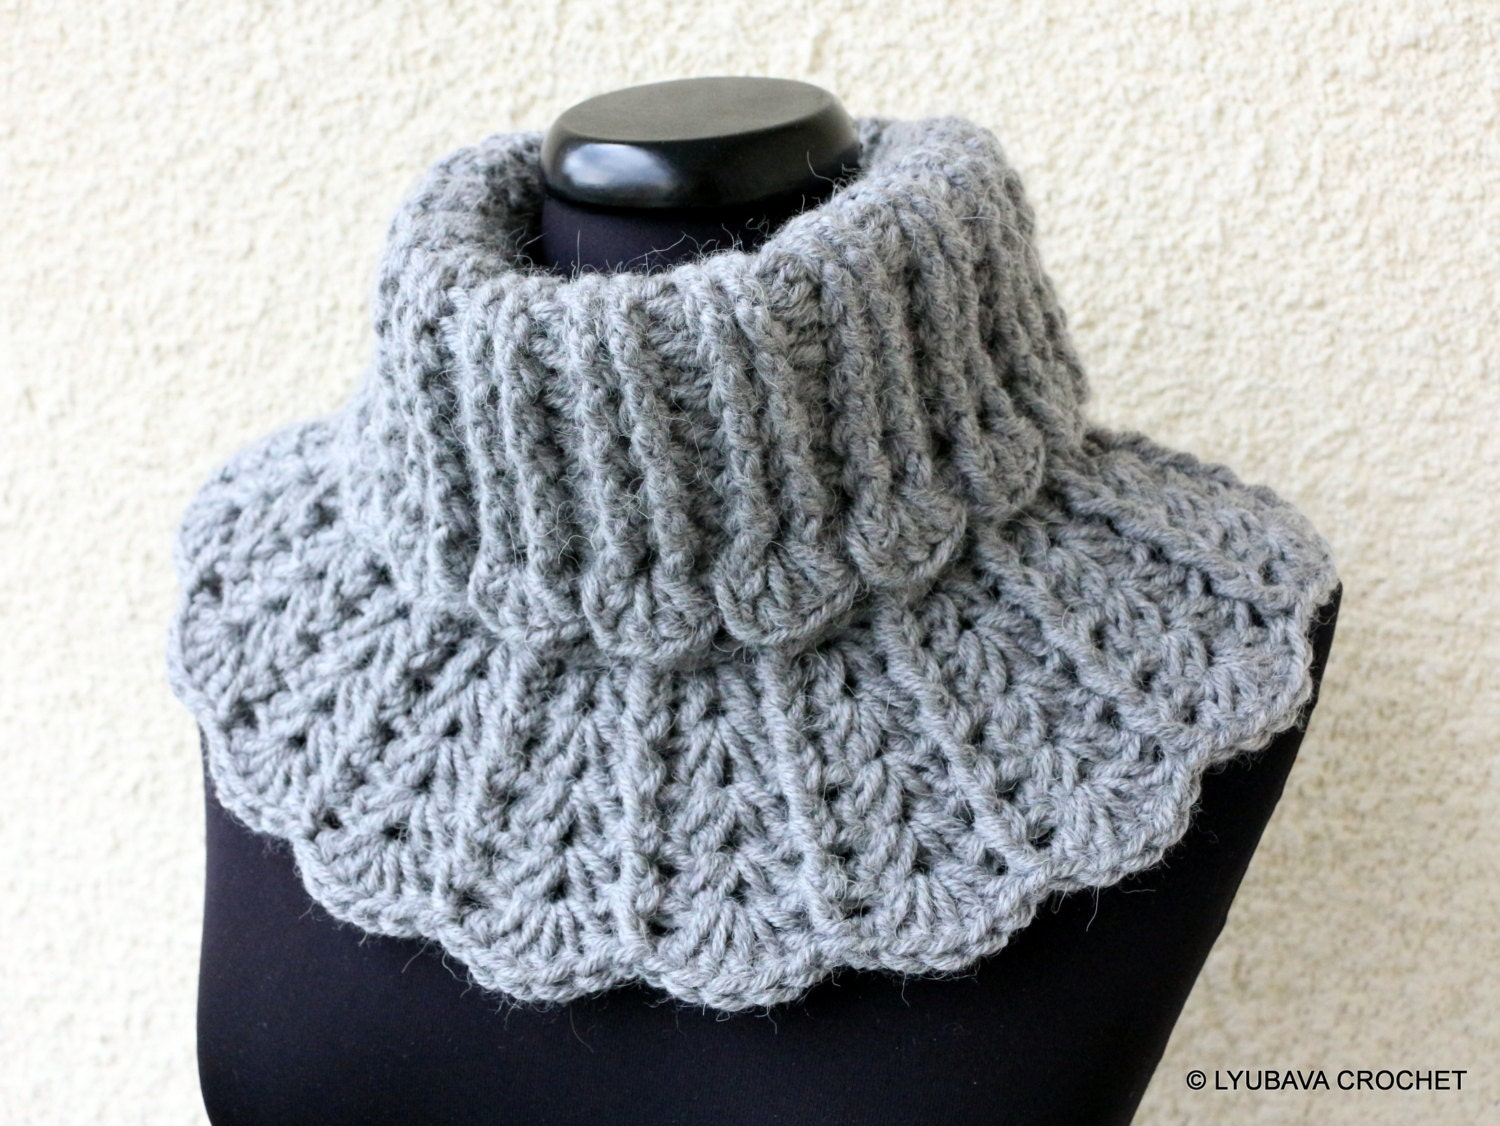 Crochet Patterns Neck Warmers : CROCHET Neck Warmer PATTERN Winter Scarf Chunky by LyubavaCrochet